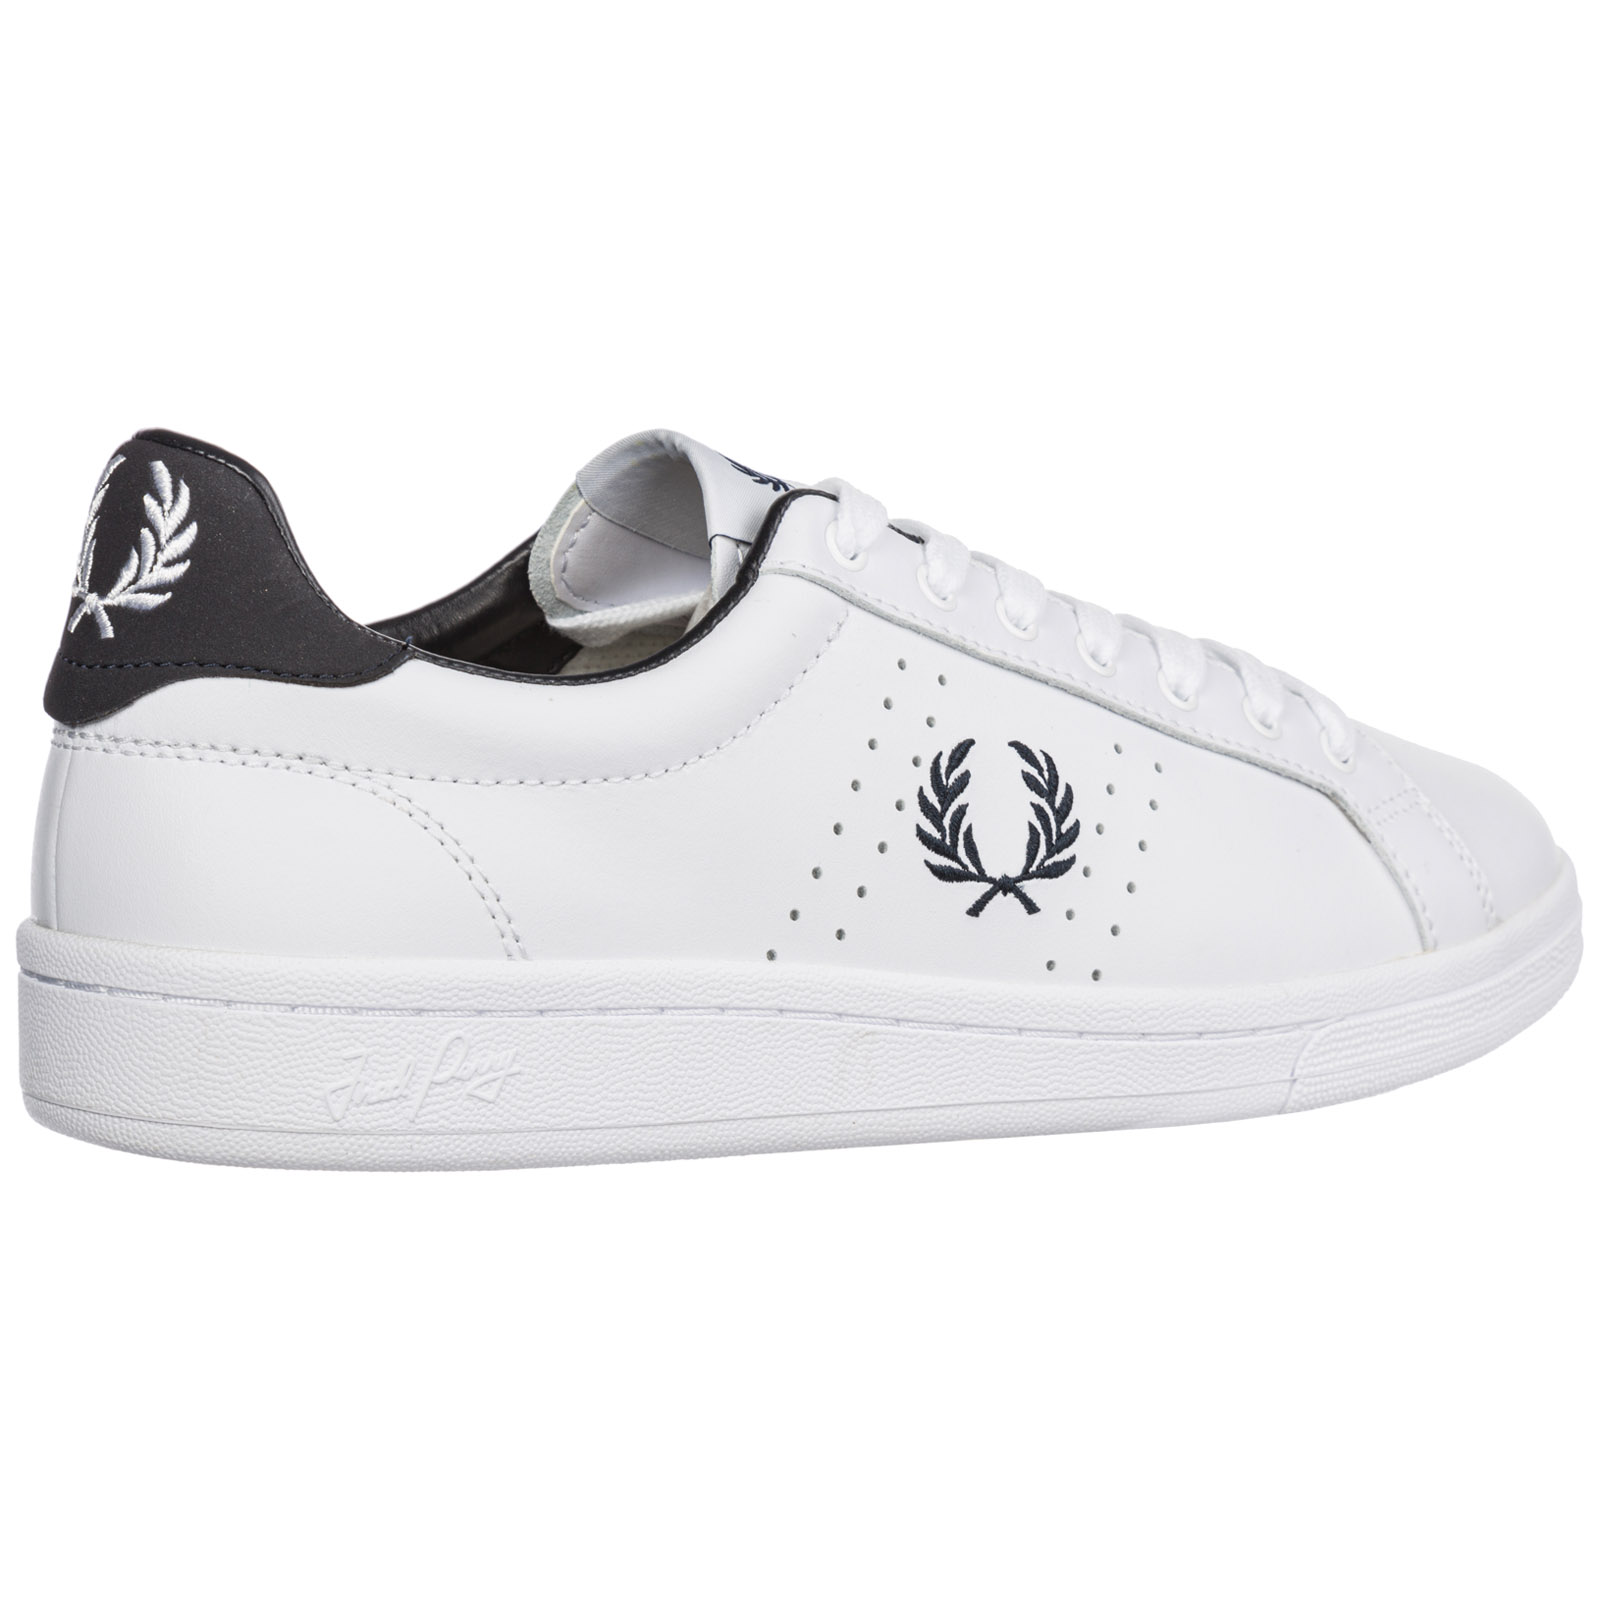 Sneakers Fred Perry B721 B6201 white